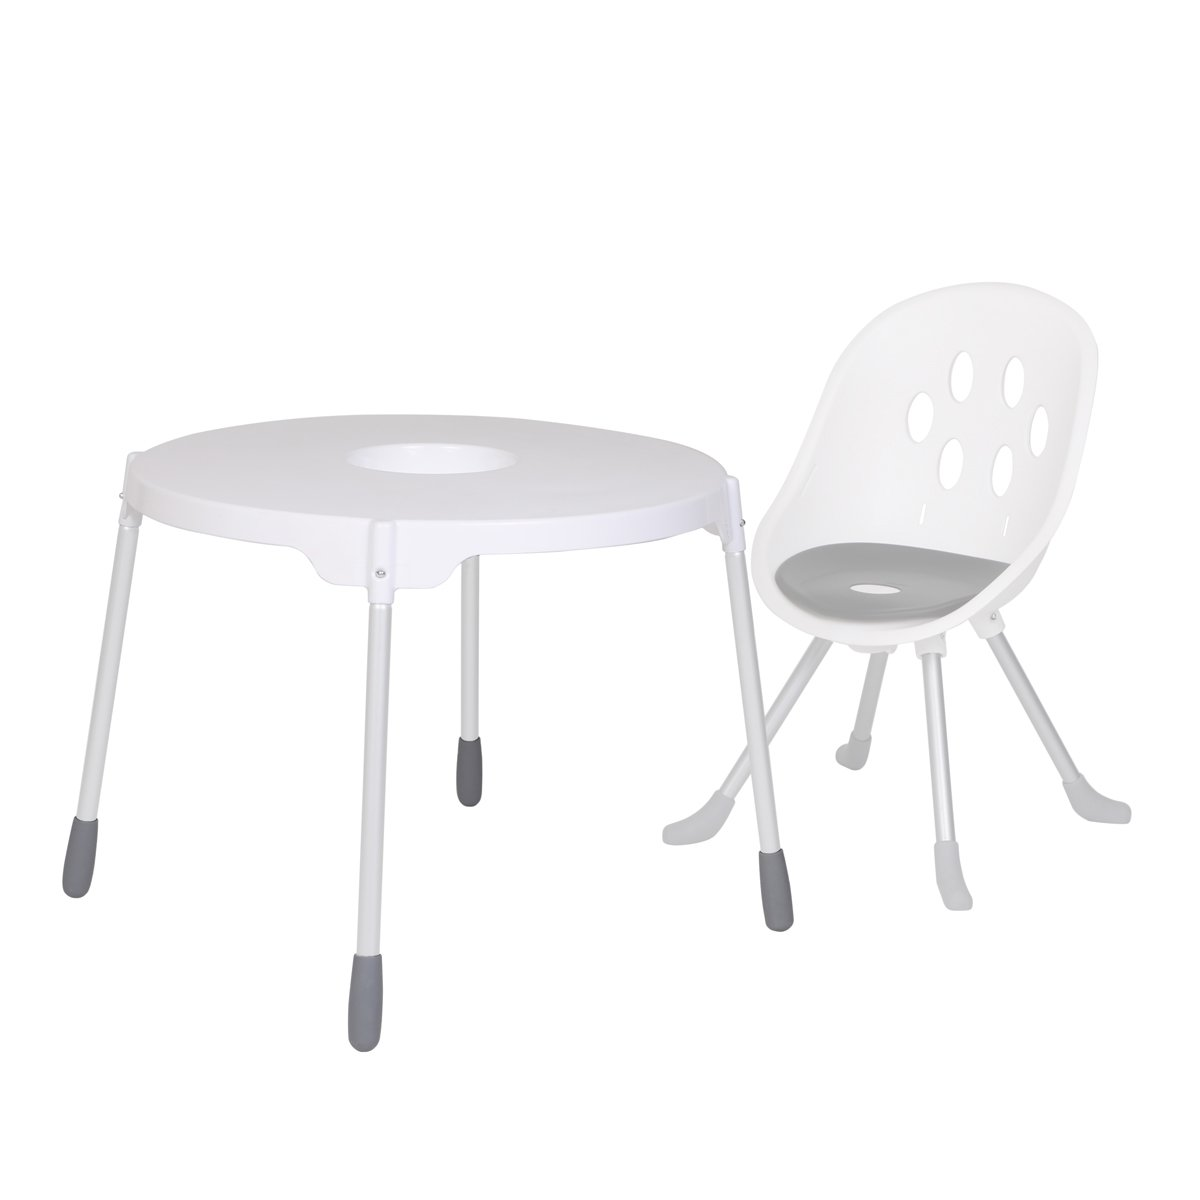 https://cdn.accentuate.io/4676346937432/19272668184664/phil_and_teds_poppy_table_top_with_leg_set_and_poppy_high_chair_1-v1630984557888.jpg?1200x1200